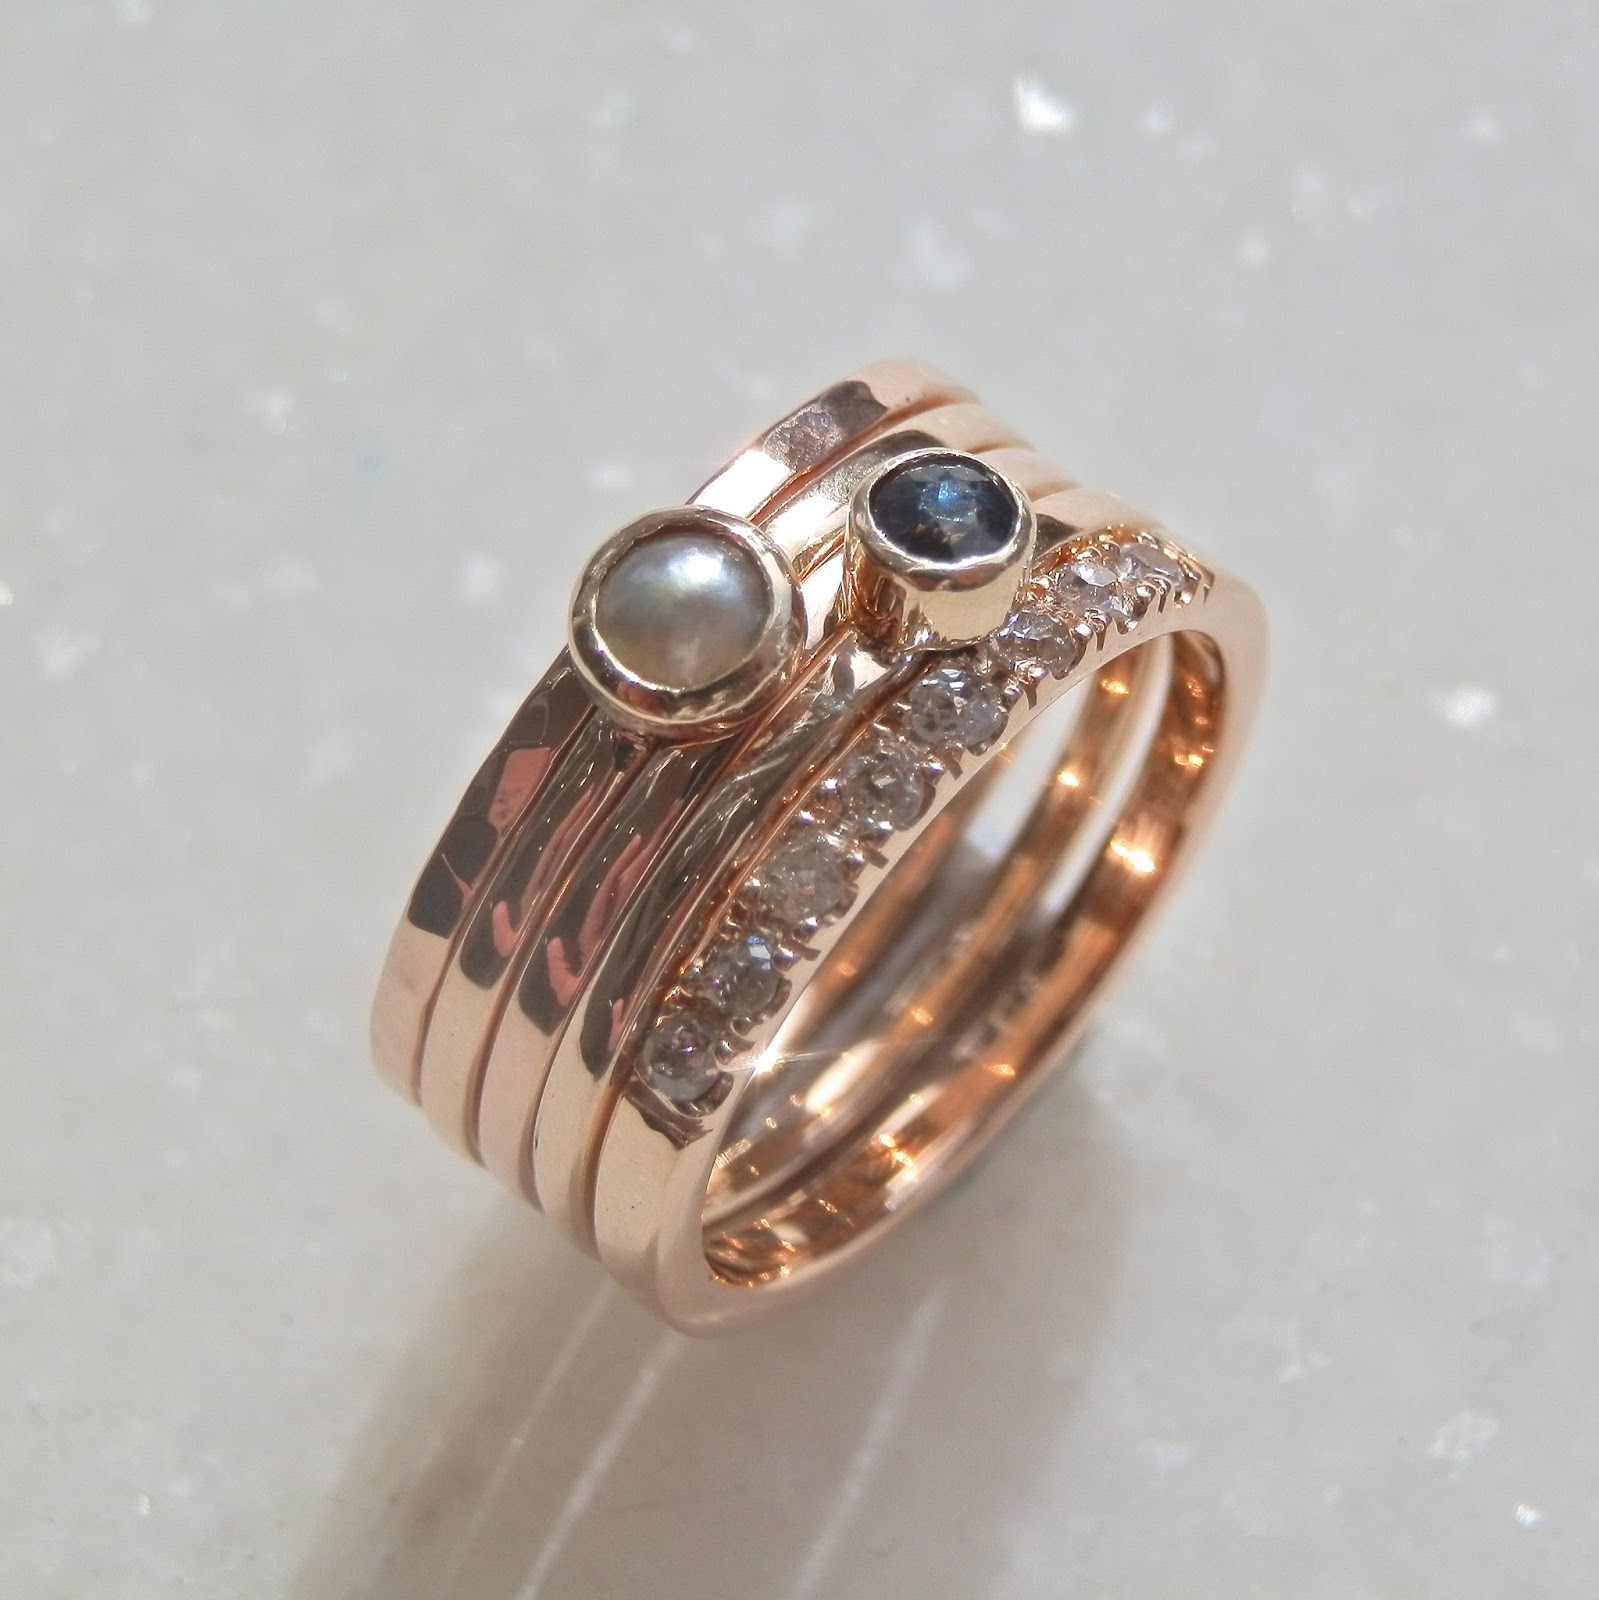 c3833b6d2 ... a commission from a lovely local lady who had a collection of old  pieces that she had inherited from her Mother. The pieces included a rose  gold ...